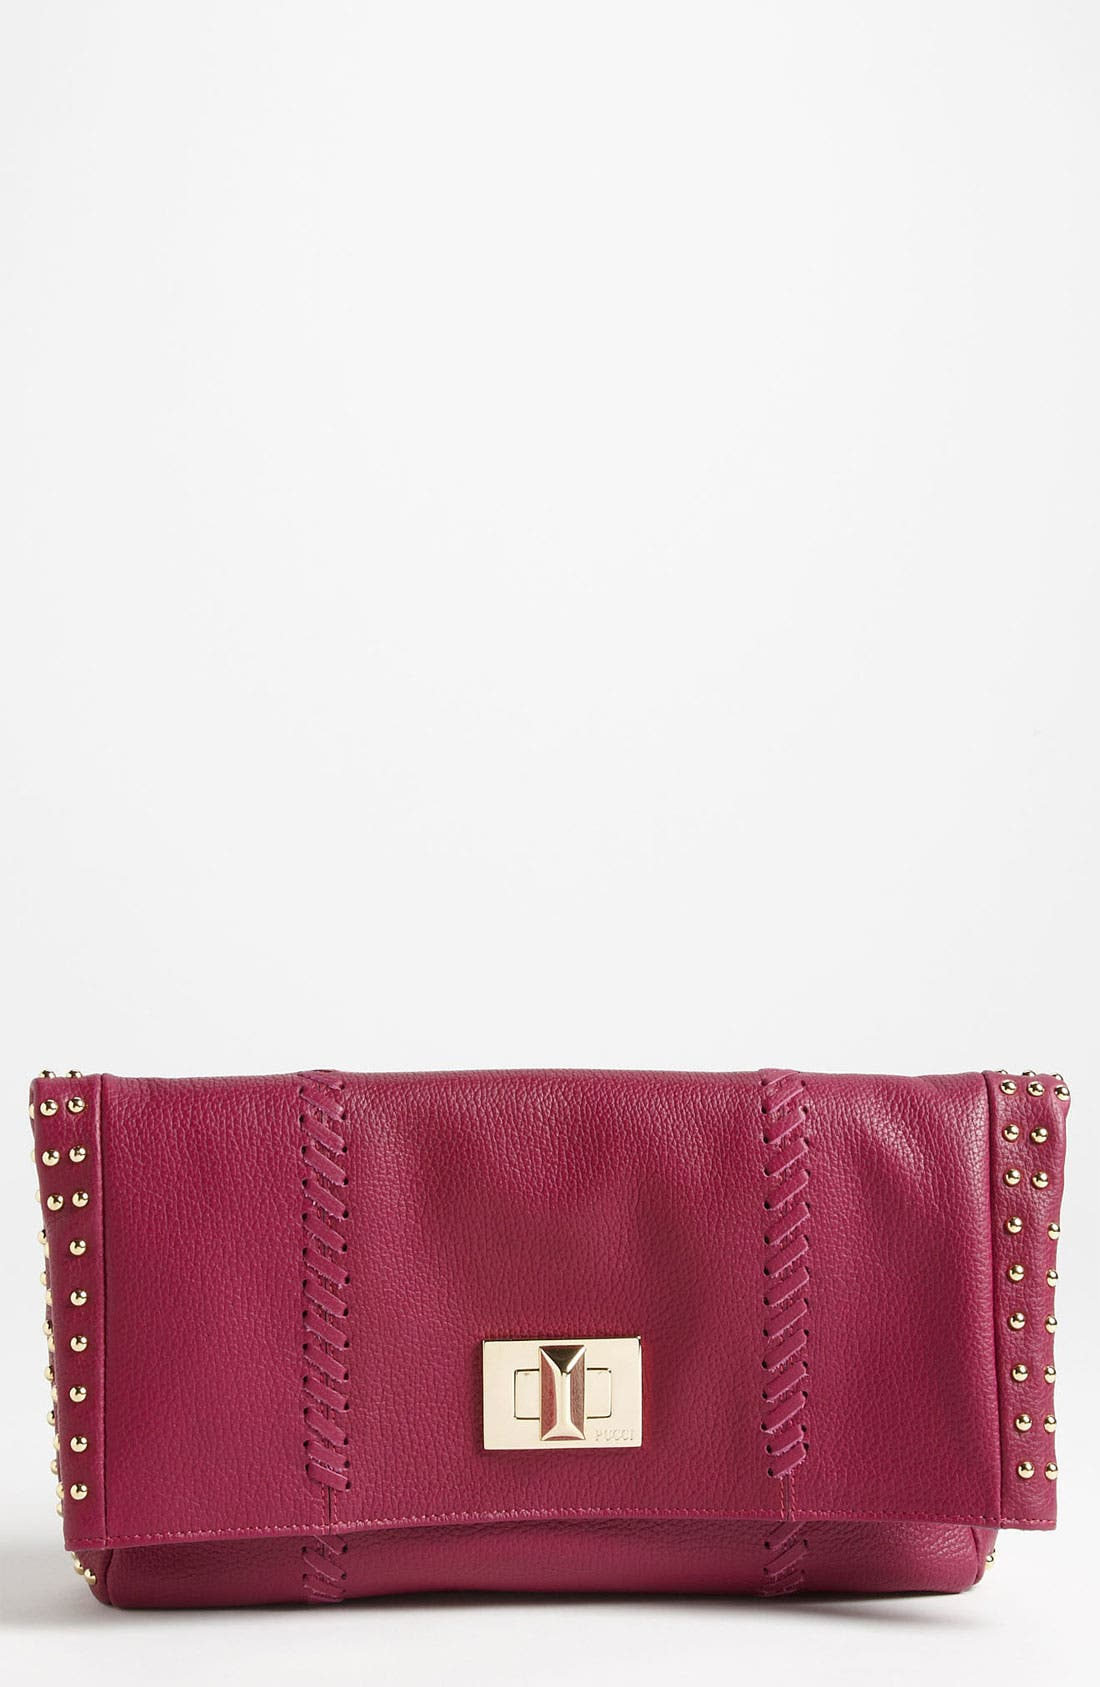 Alternate Image 1 Selected - Emilio Pucci Leather Fold Over Clutch